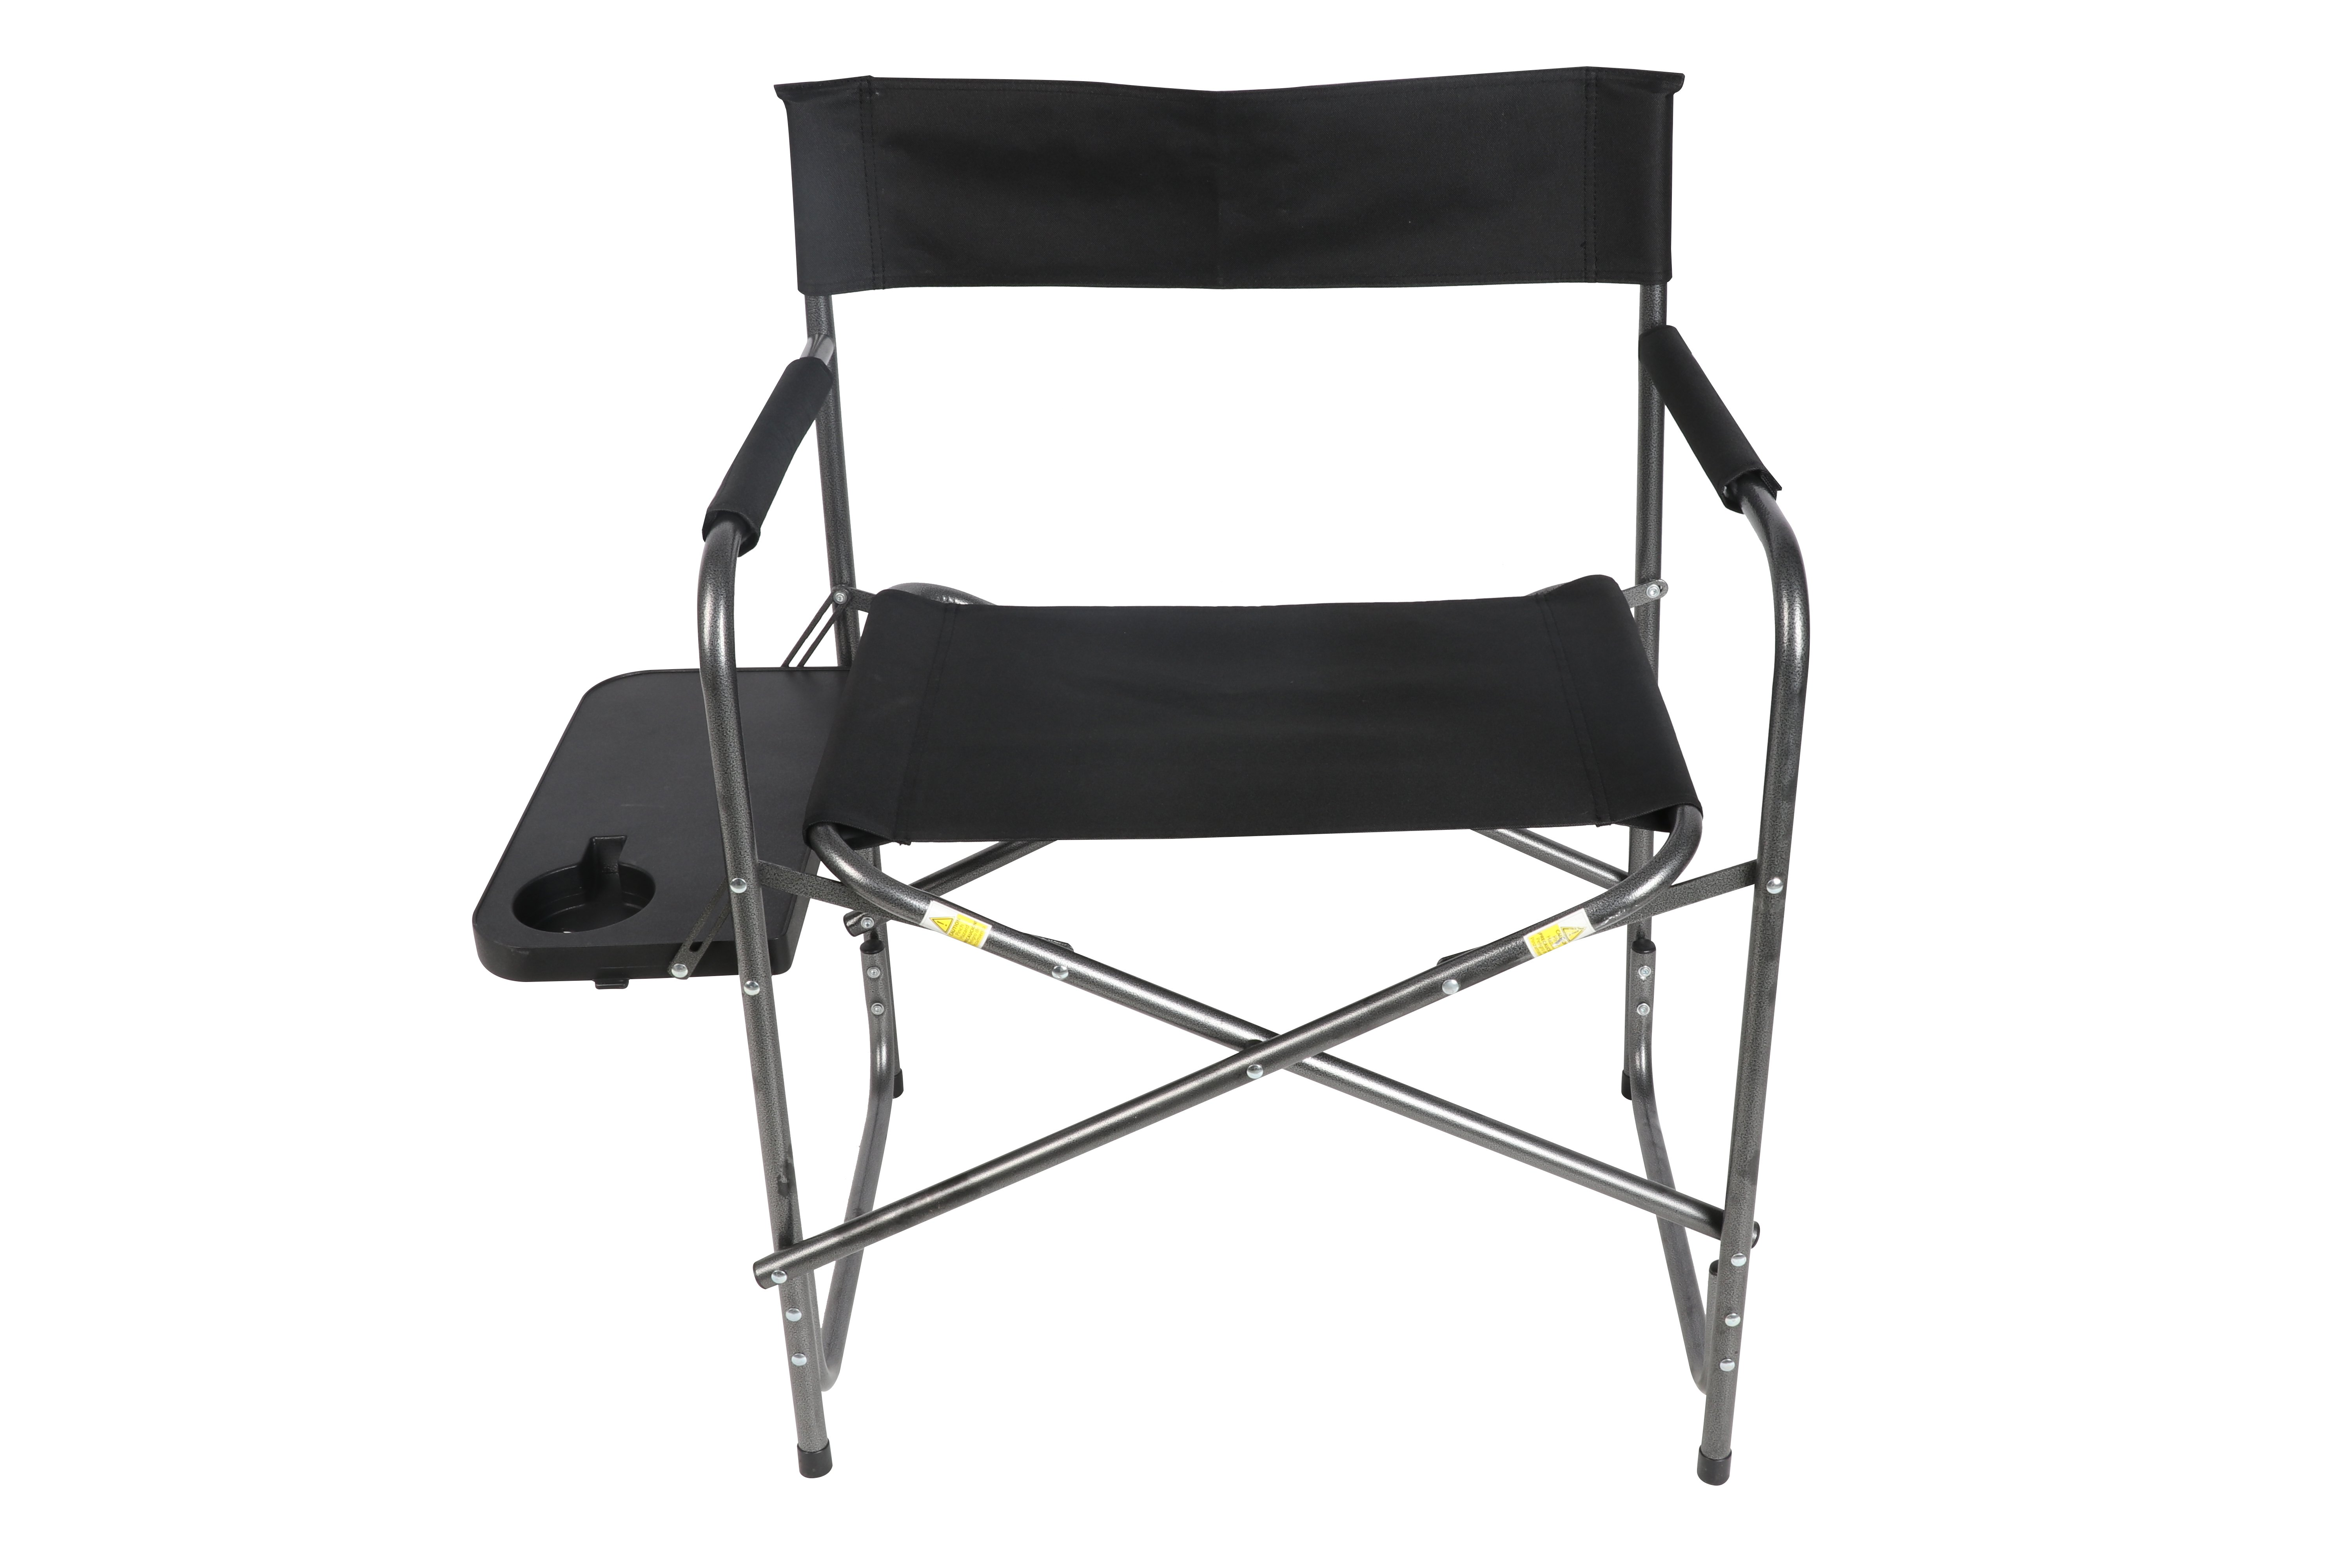 Outstanding Ozark Trail Directors Chair With Foldout Side Table Black Pdpeps Interior Chair Design Pdpepsorg